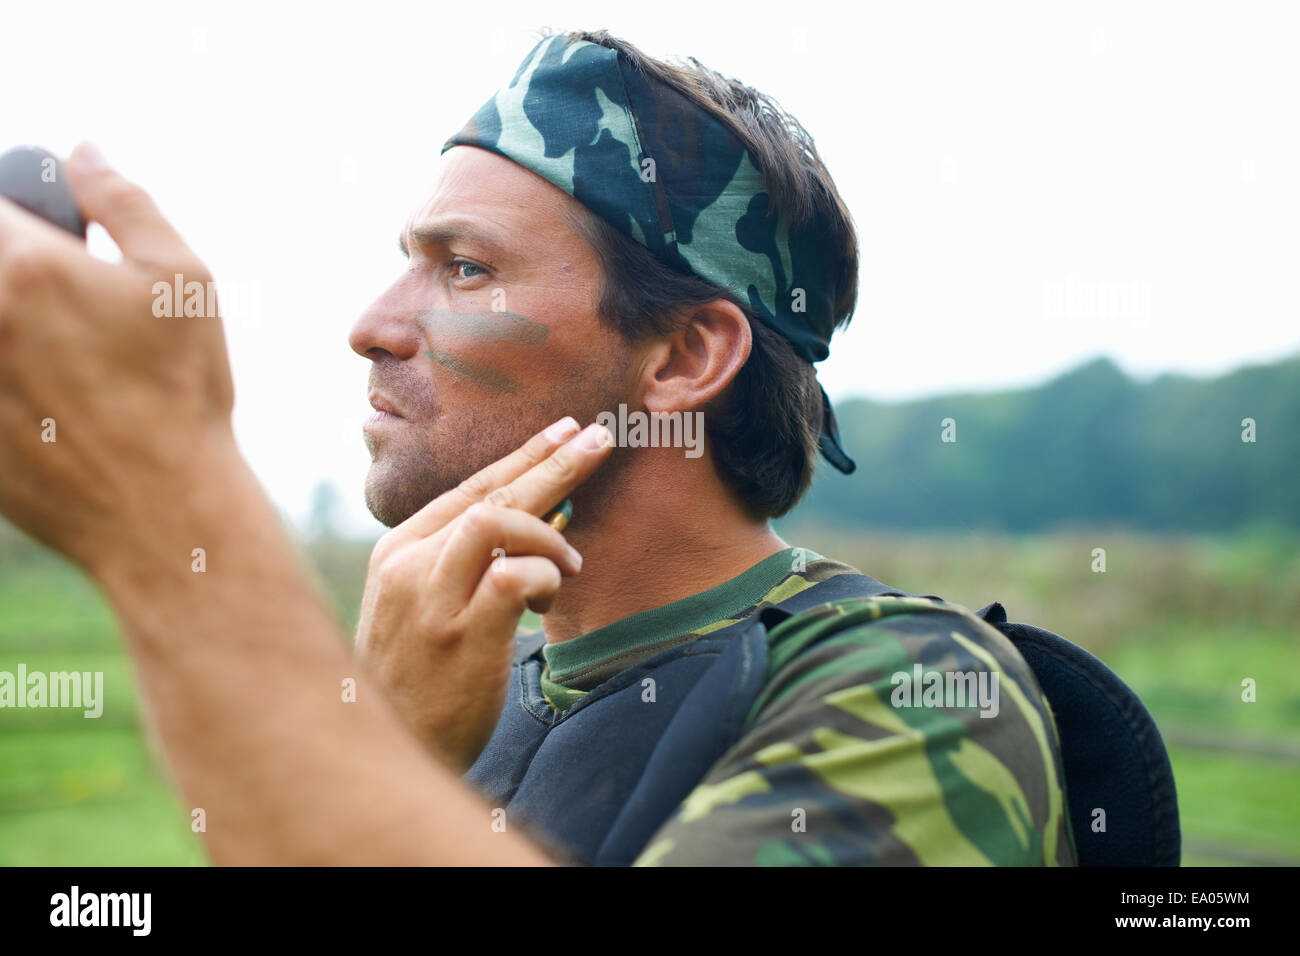 Paintball player in combat gear - Stock Image